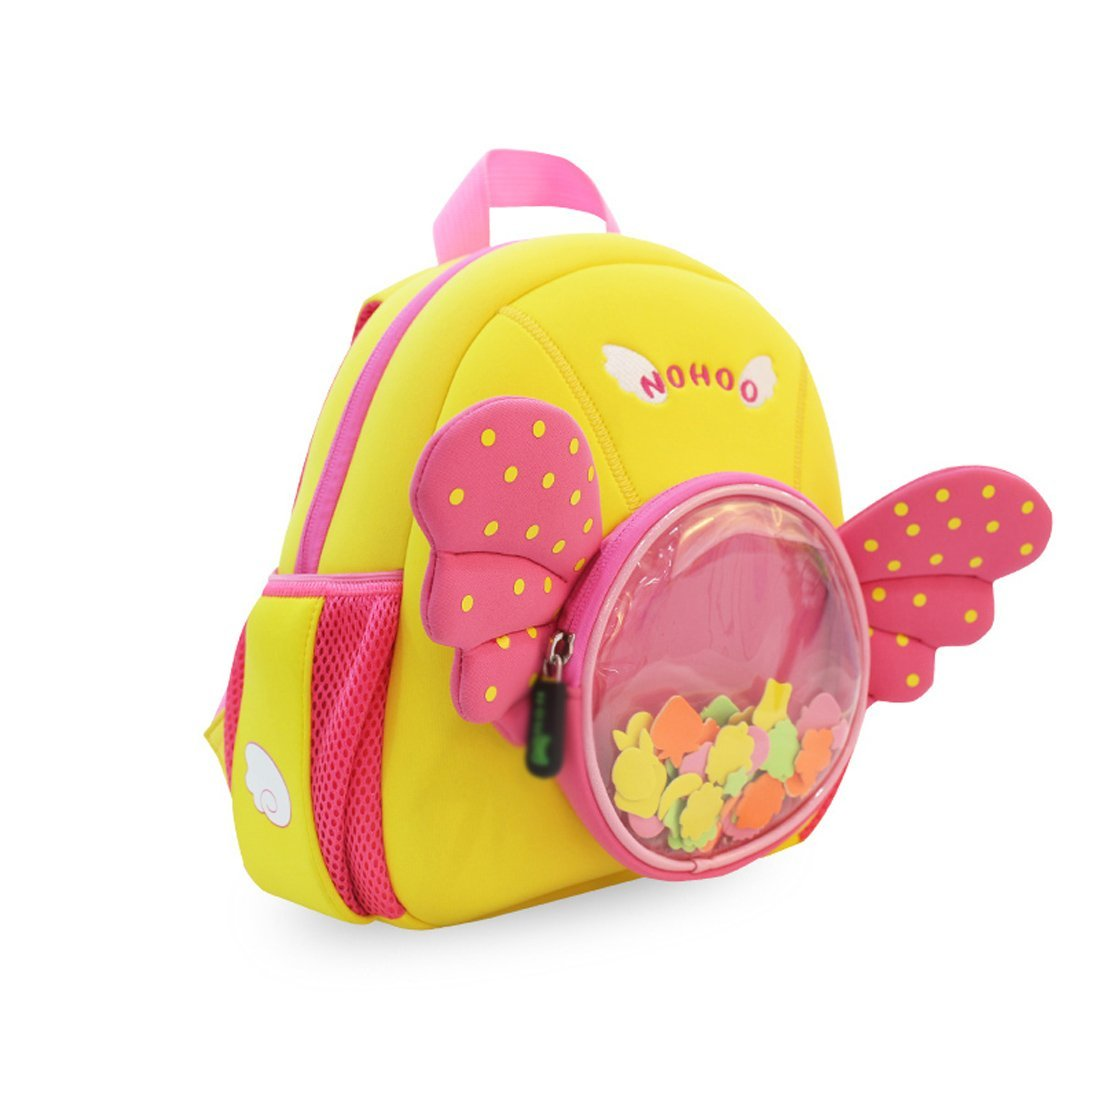 Nohoo Children Products Array image152